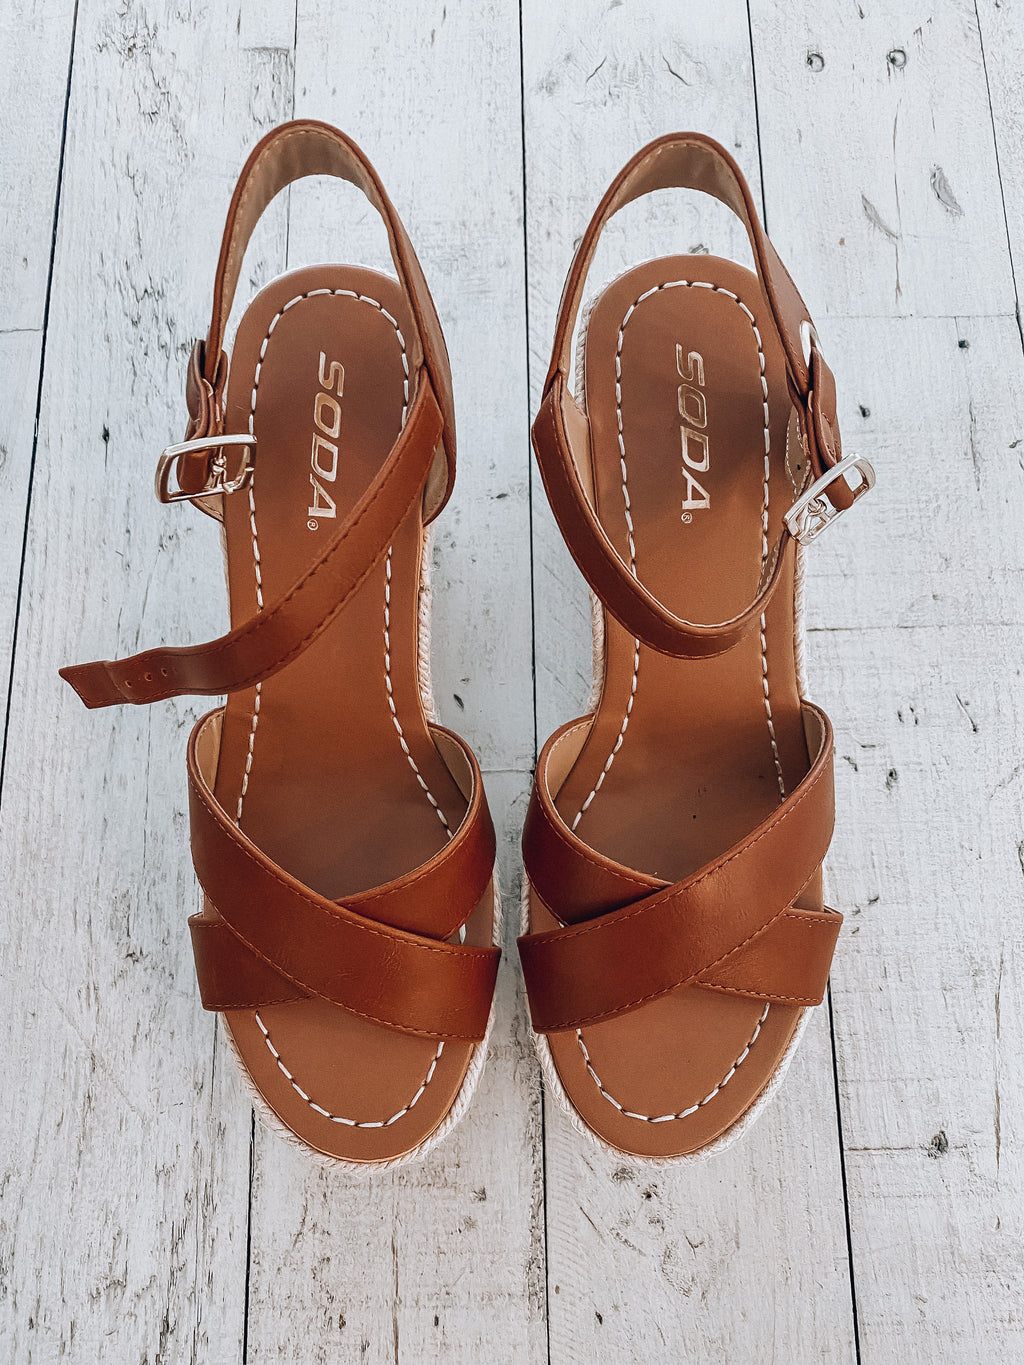 Summer Wedge